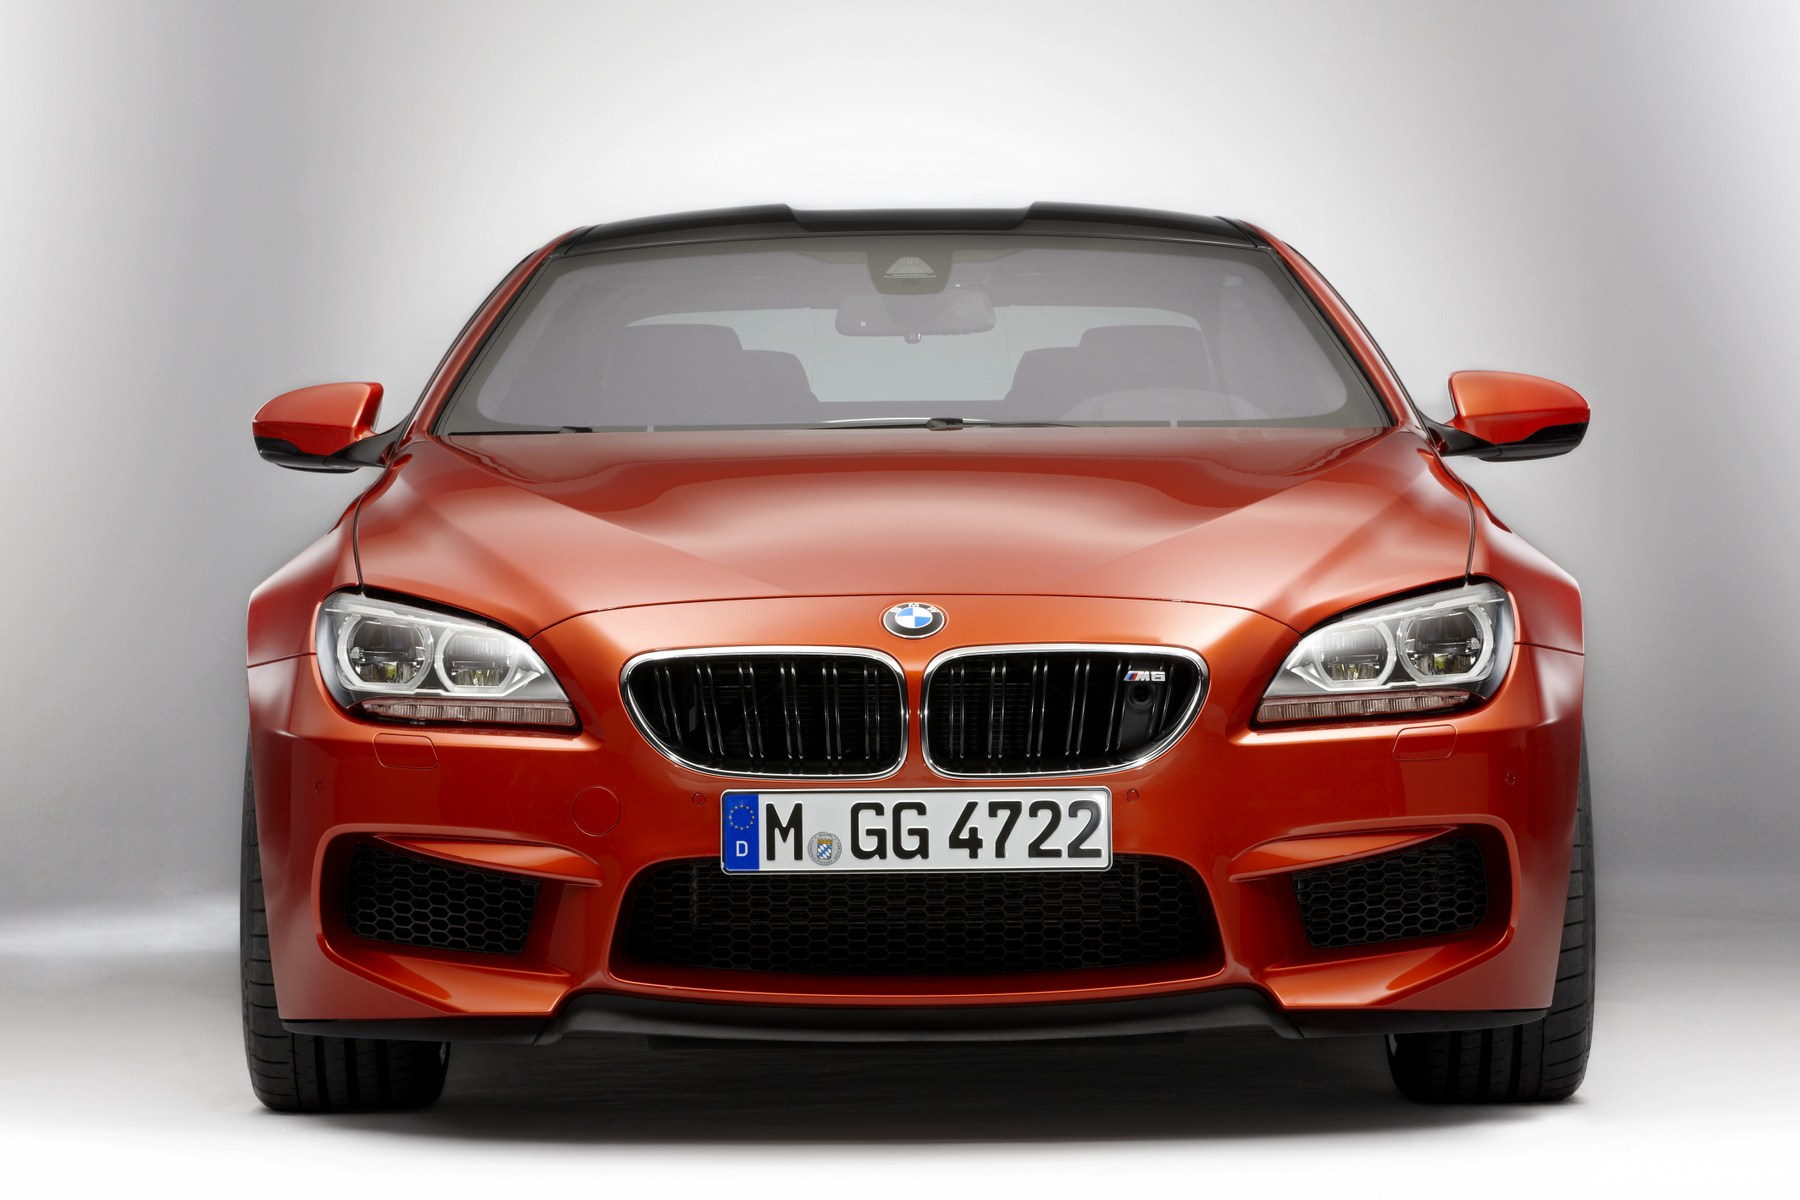 2013 BMW M6 Coupe_d0038951_11502410.jpg